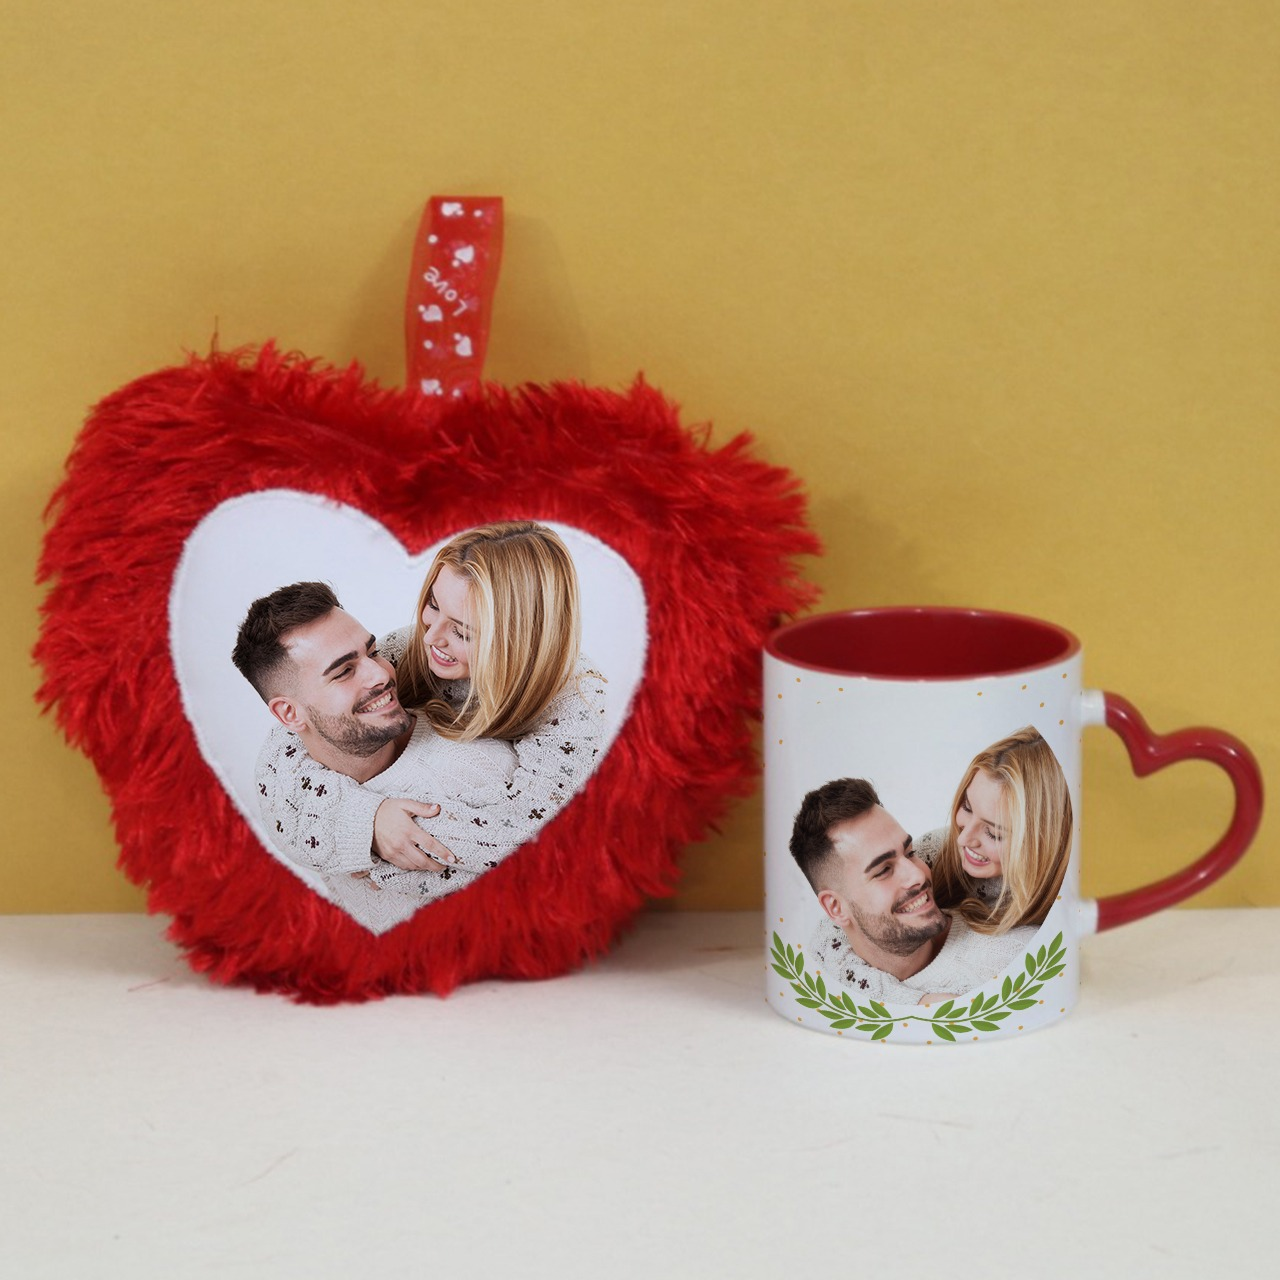 Personalized Red Heart Cushion with Mug